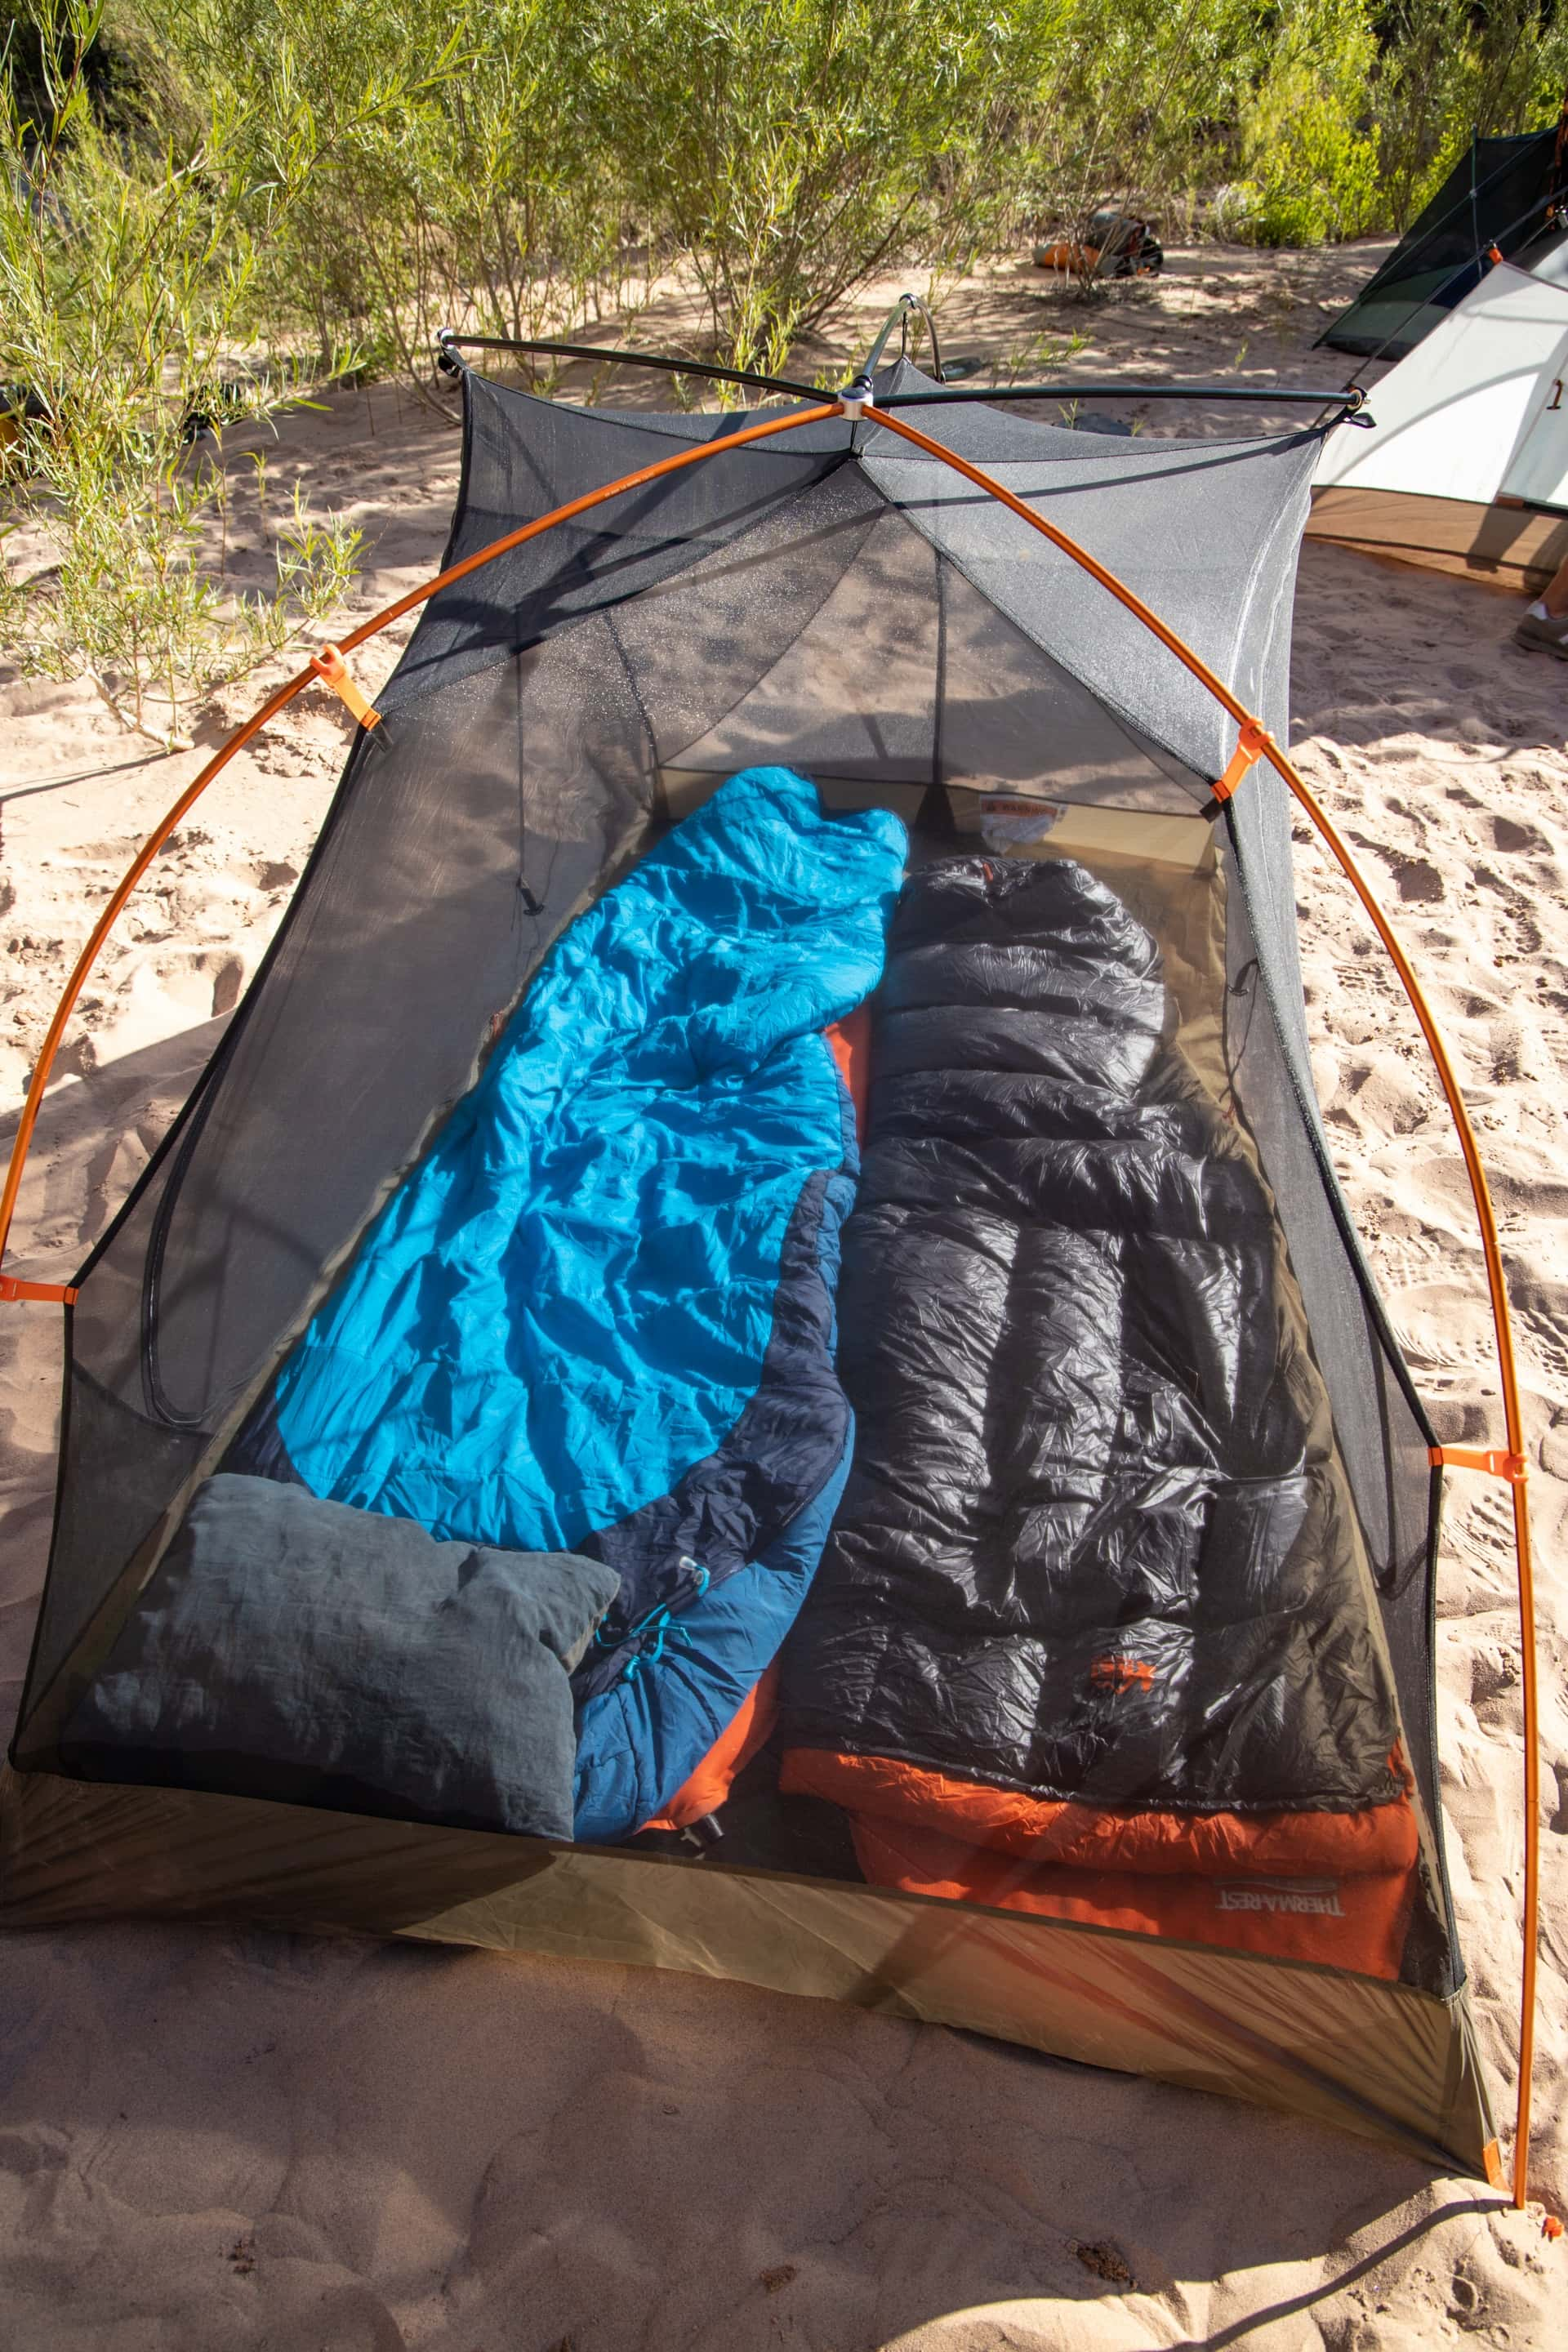 Check out my review of the new REI Quarter Dome SL 2 Tent - a spacious ultralight backpacking tent that weighs 2.8 pounds and has a ton of great features.